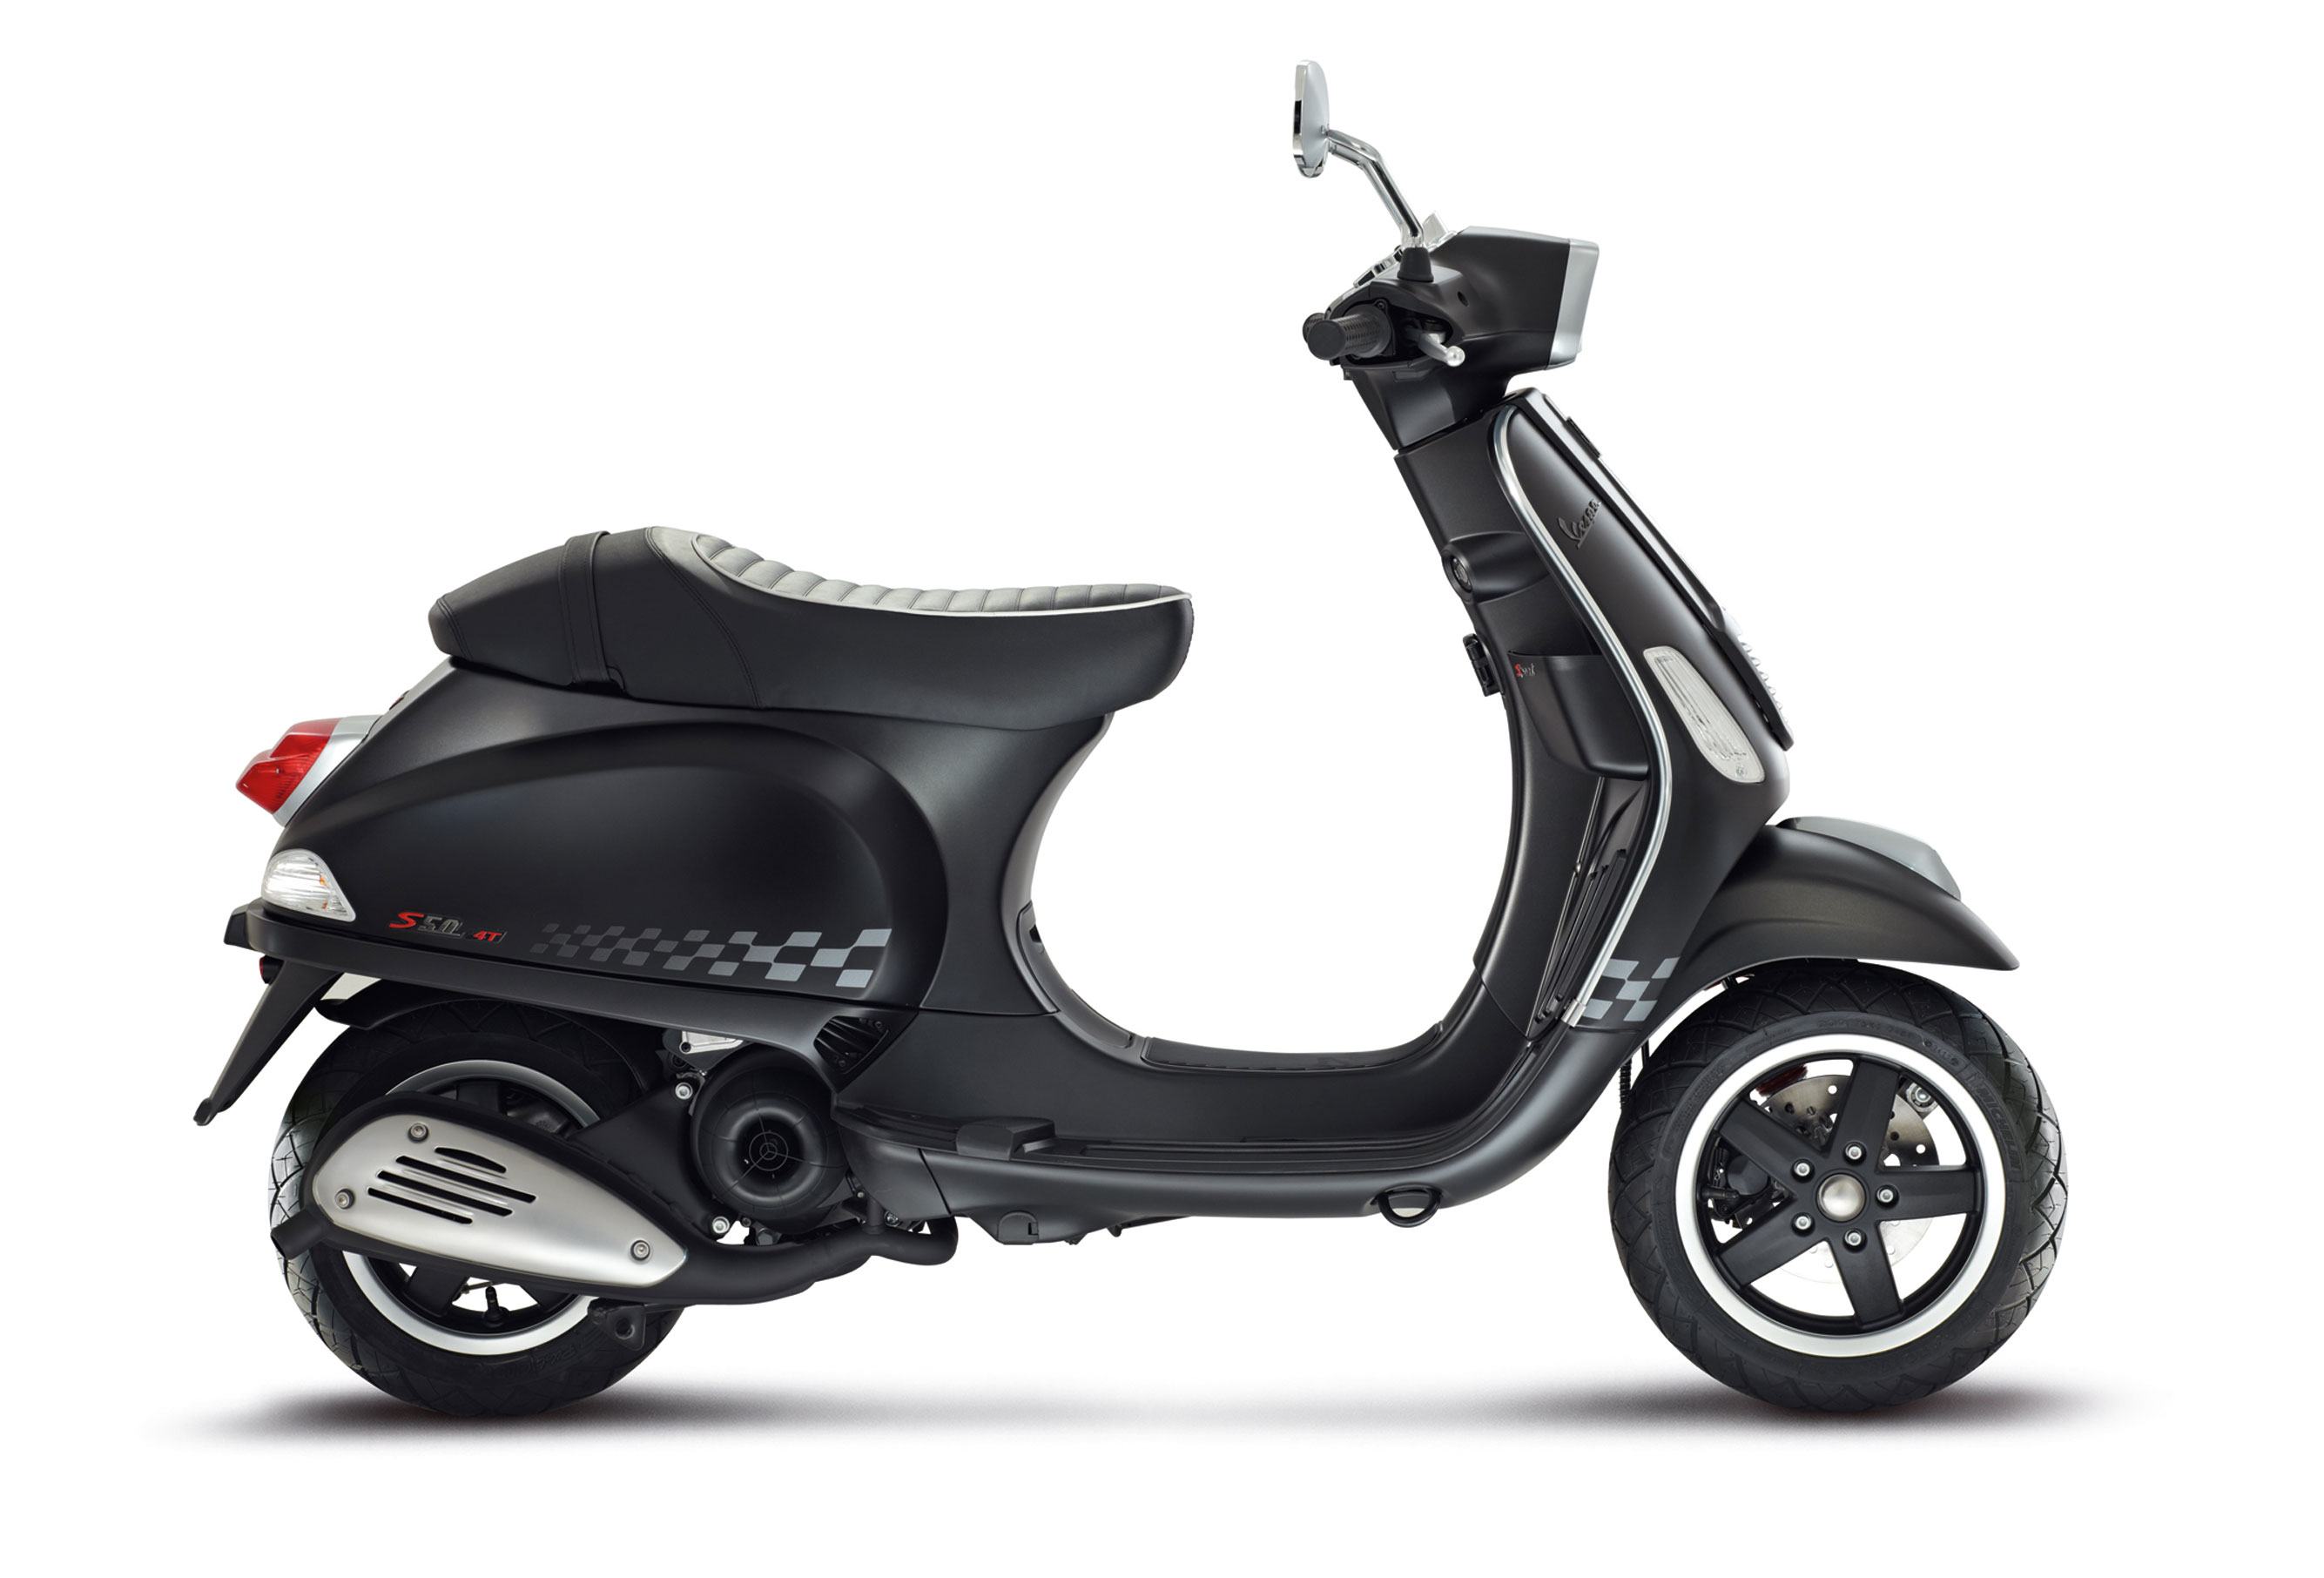 vespa s 150 i e super sport se specs 2012 2013. Black Bedroom Furniture Sets. Home Design Ideas